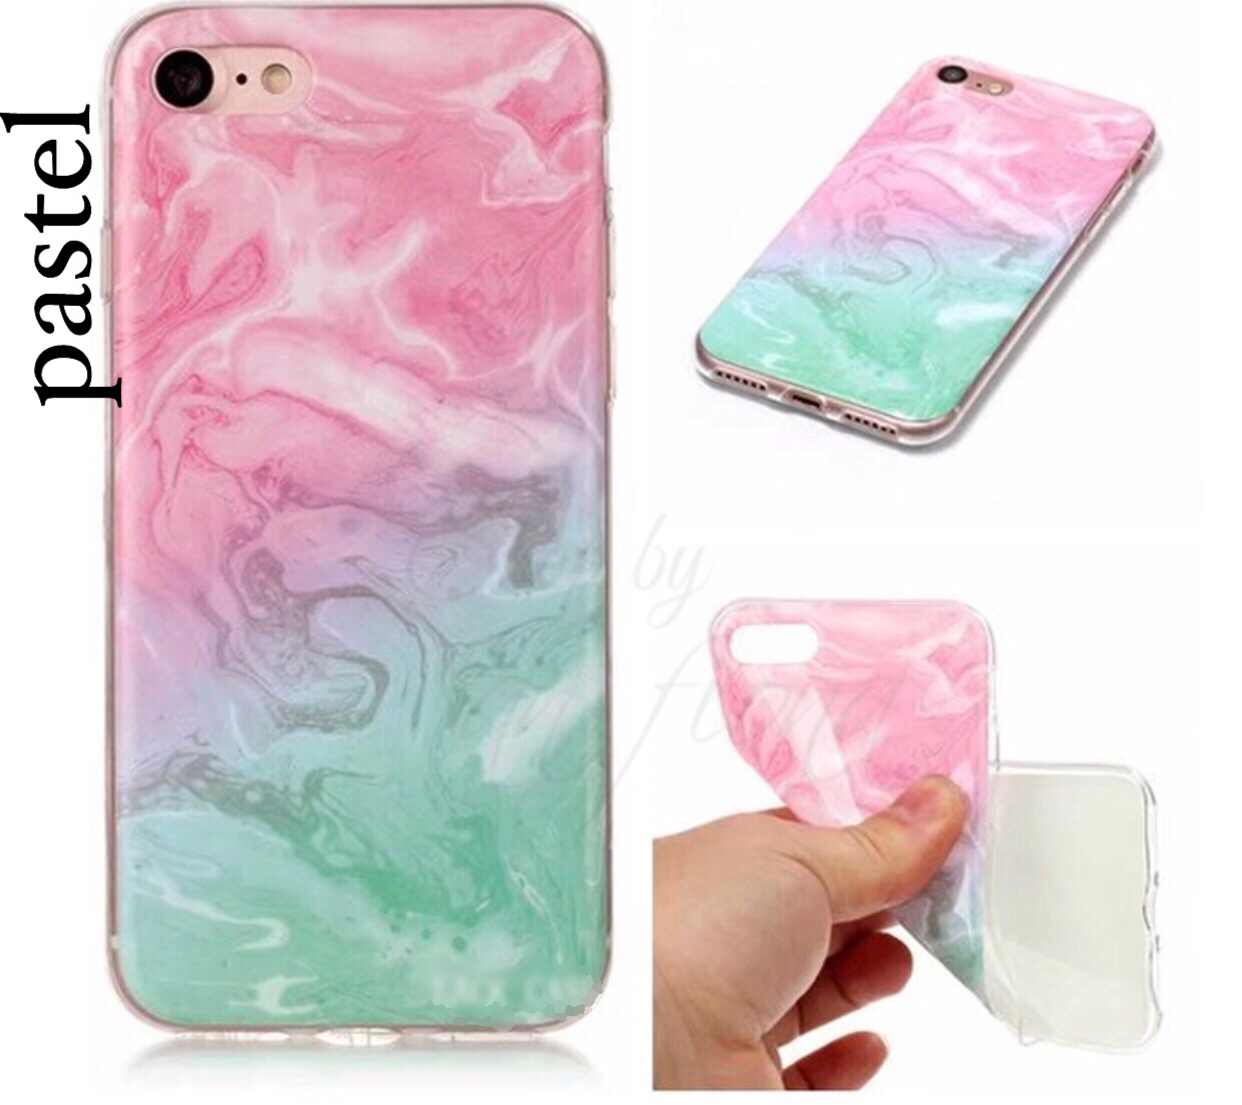 【iPhone8】2color大理石プリント&パステルマーブルiPhone case